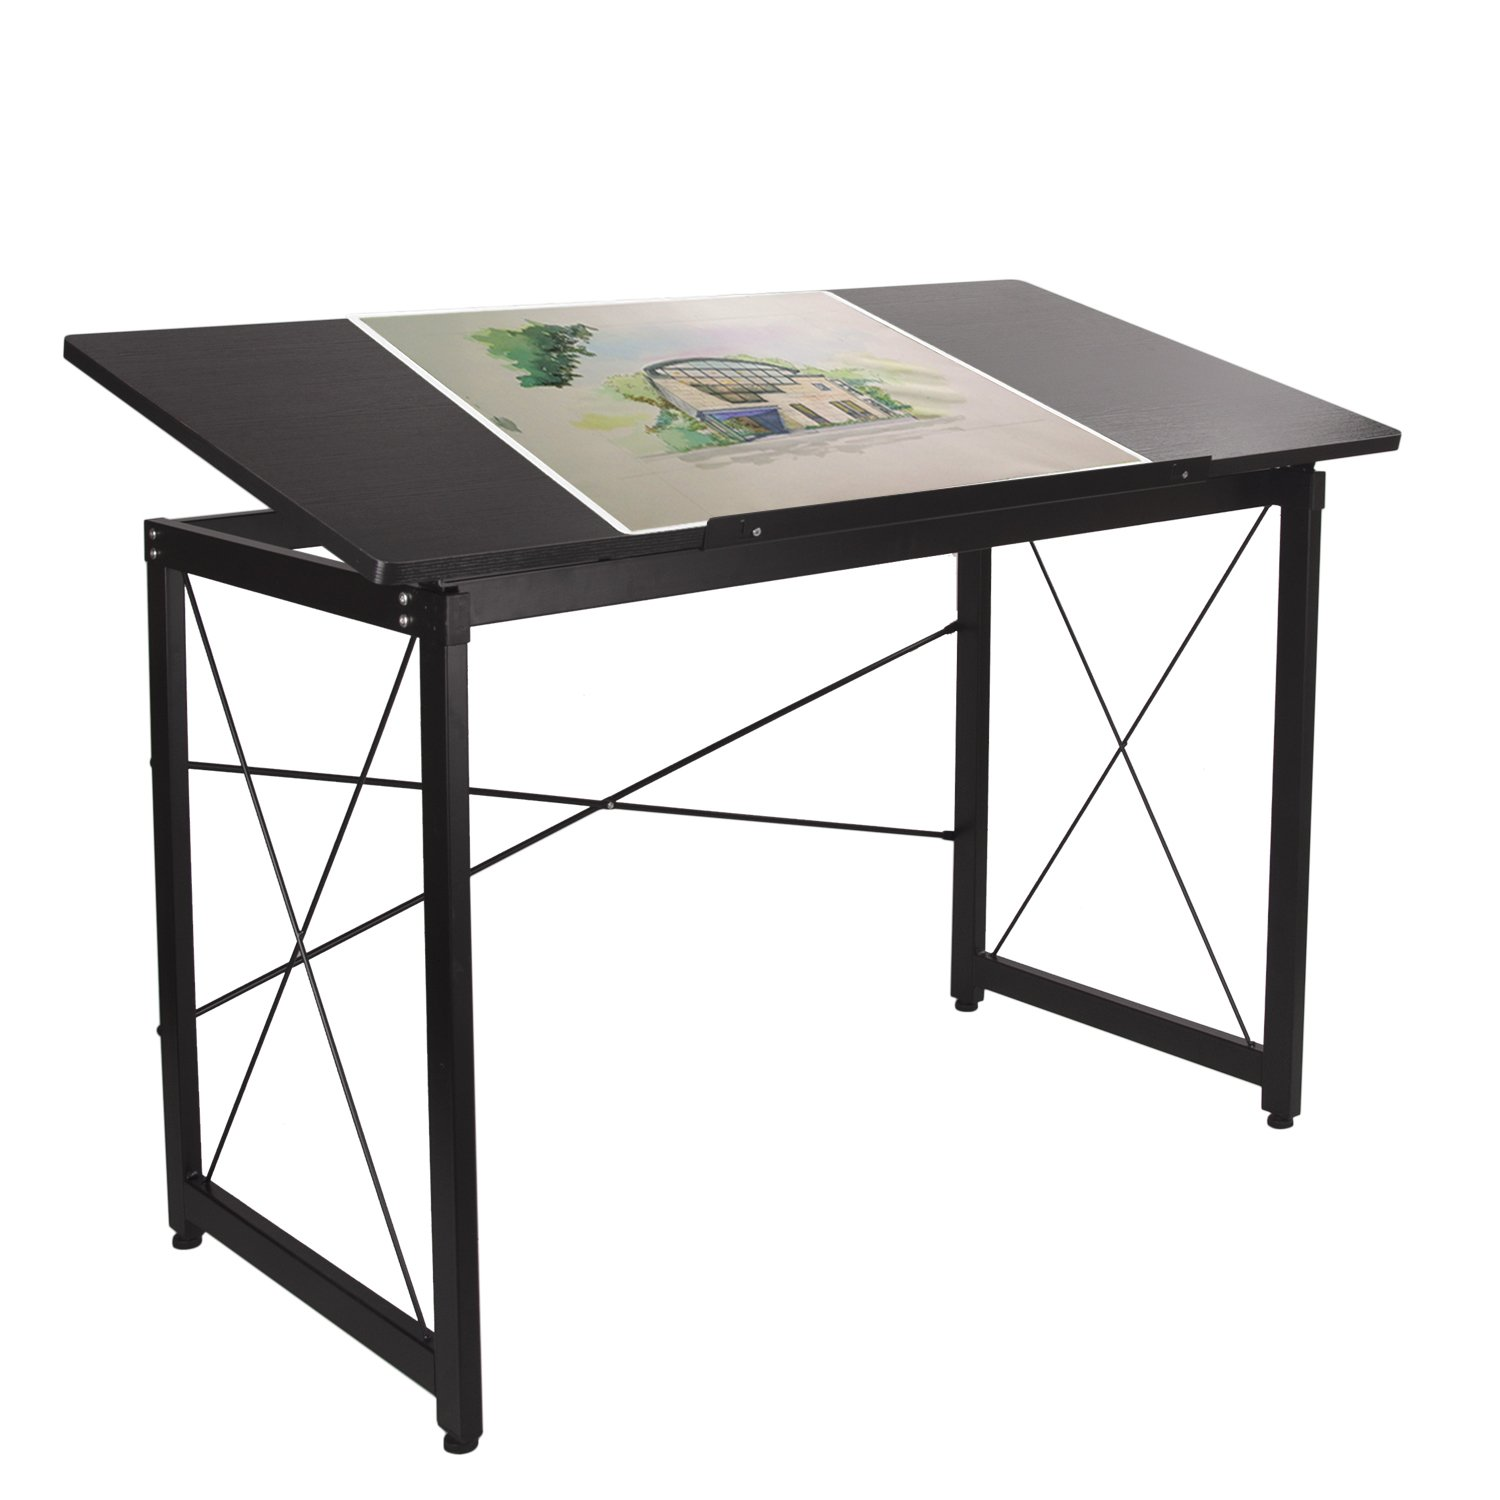 Elevens 47'' Adjustable Drafting Table - Art and Craft Drawing Folding Desk - Reading & Writing Work Station (Black) by Elevens